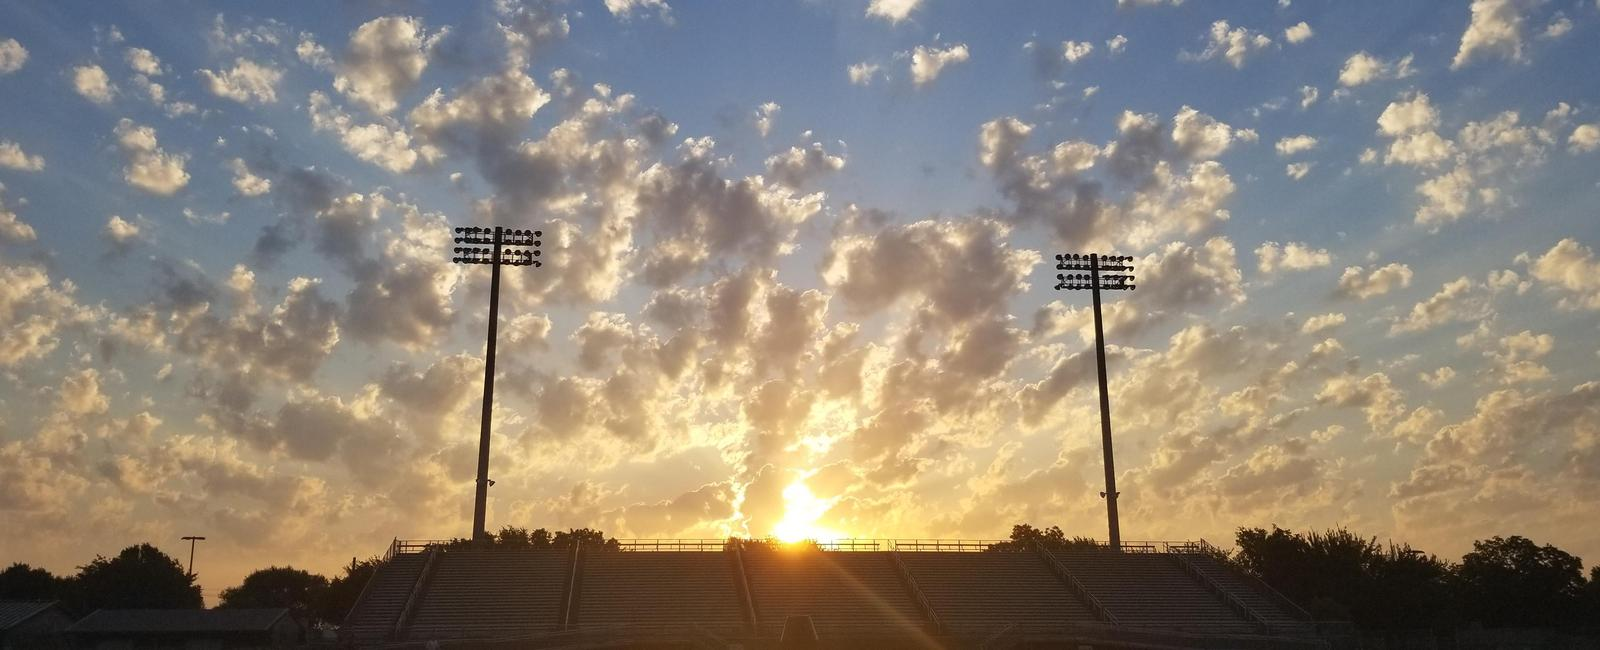 Sunrise over Lumpkins Stadium